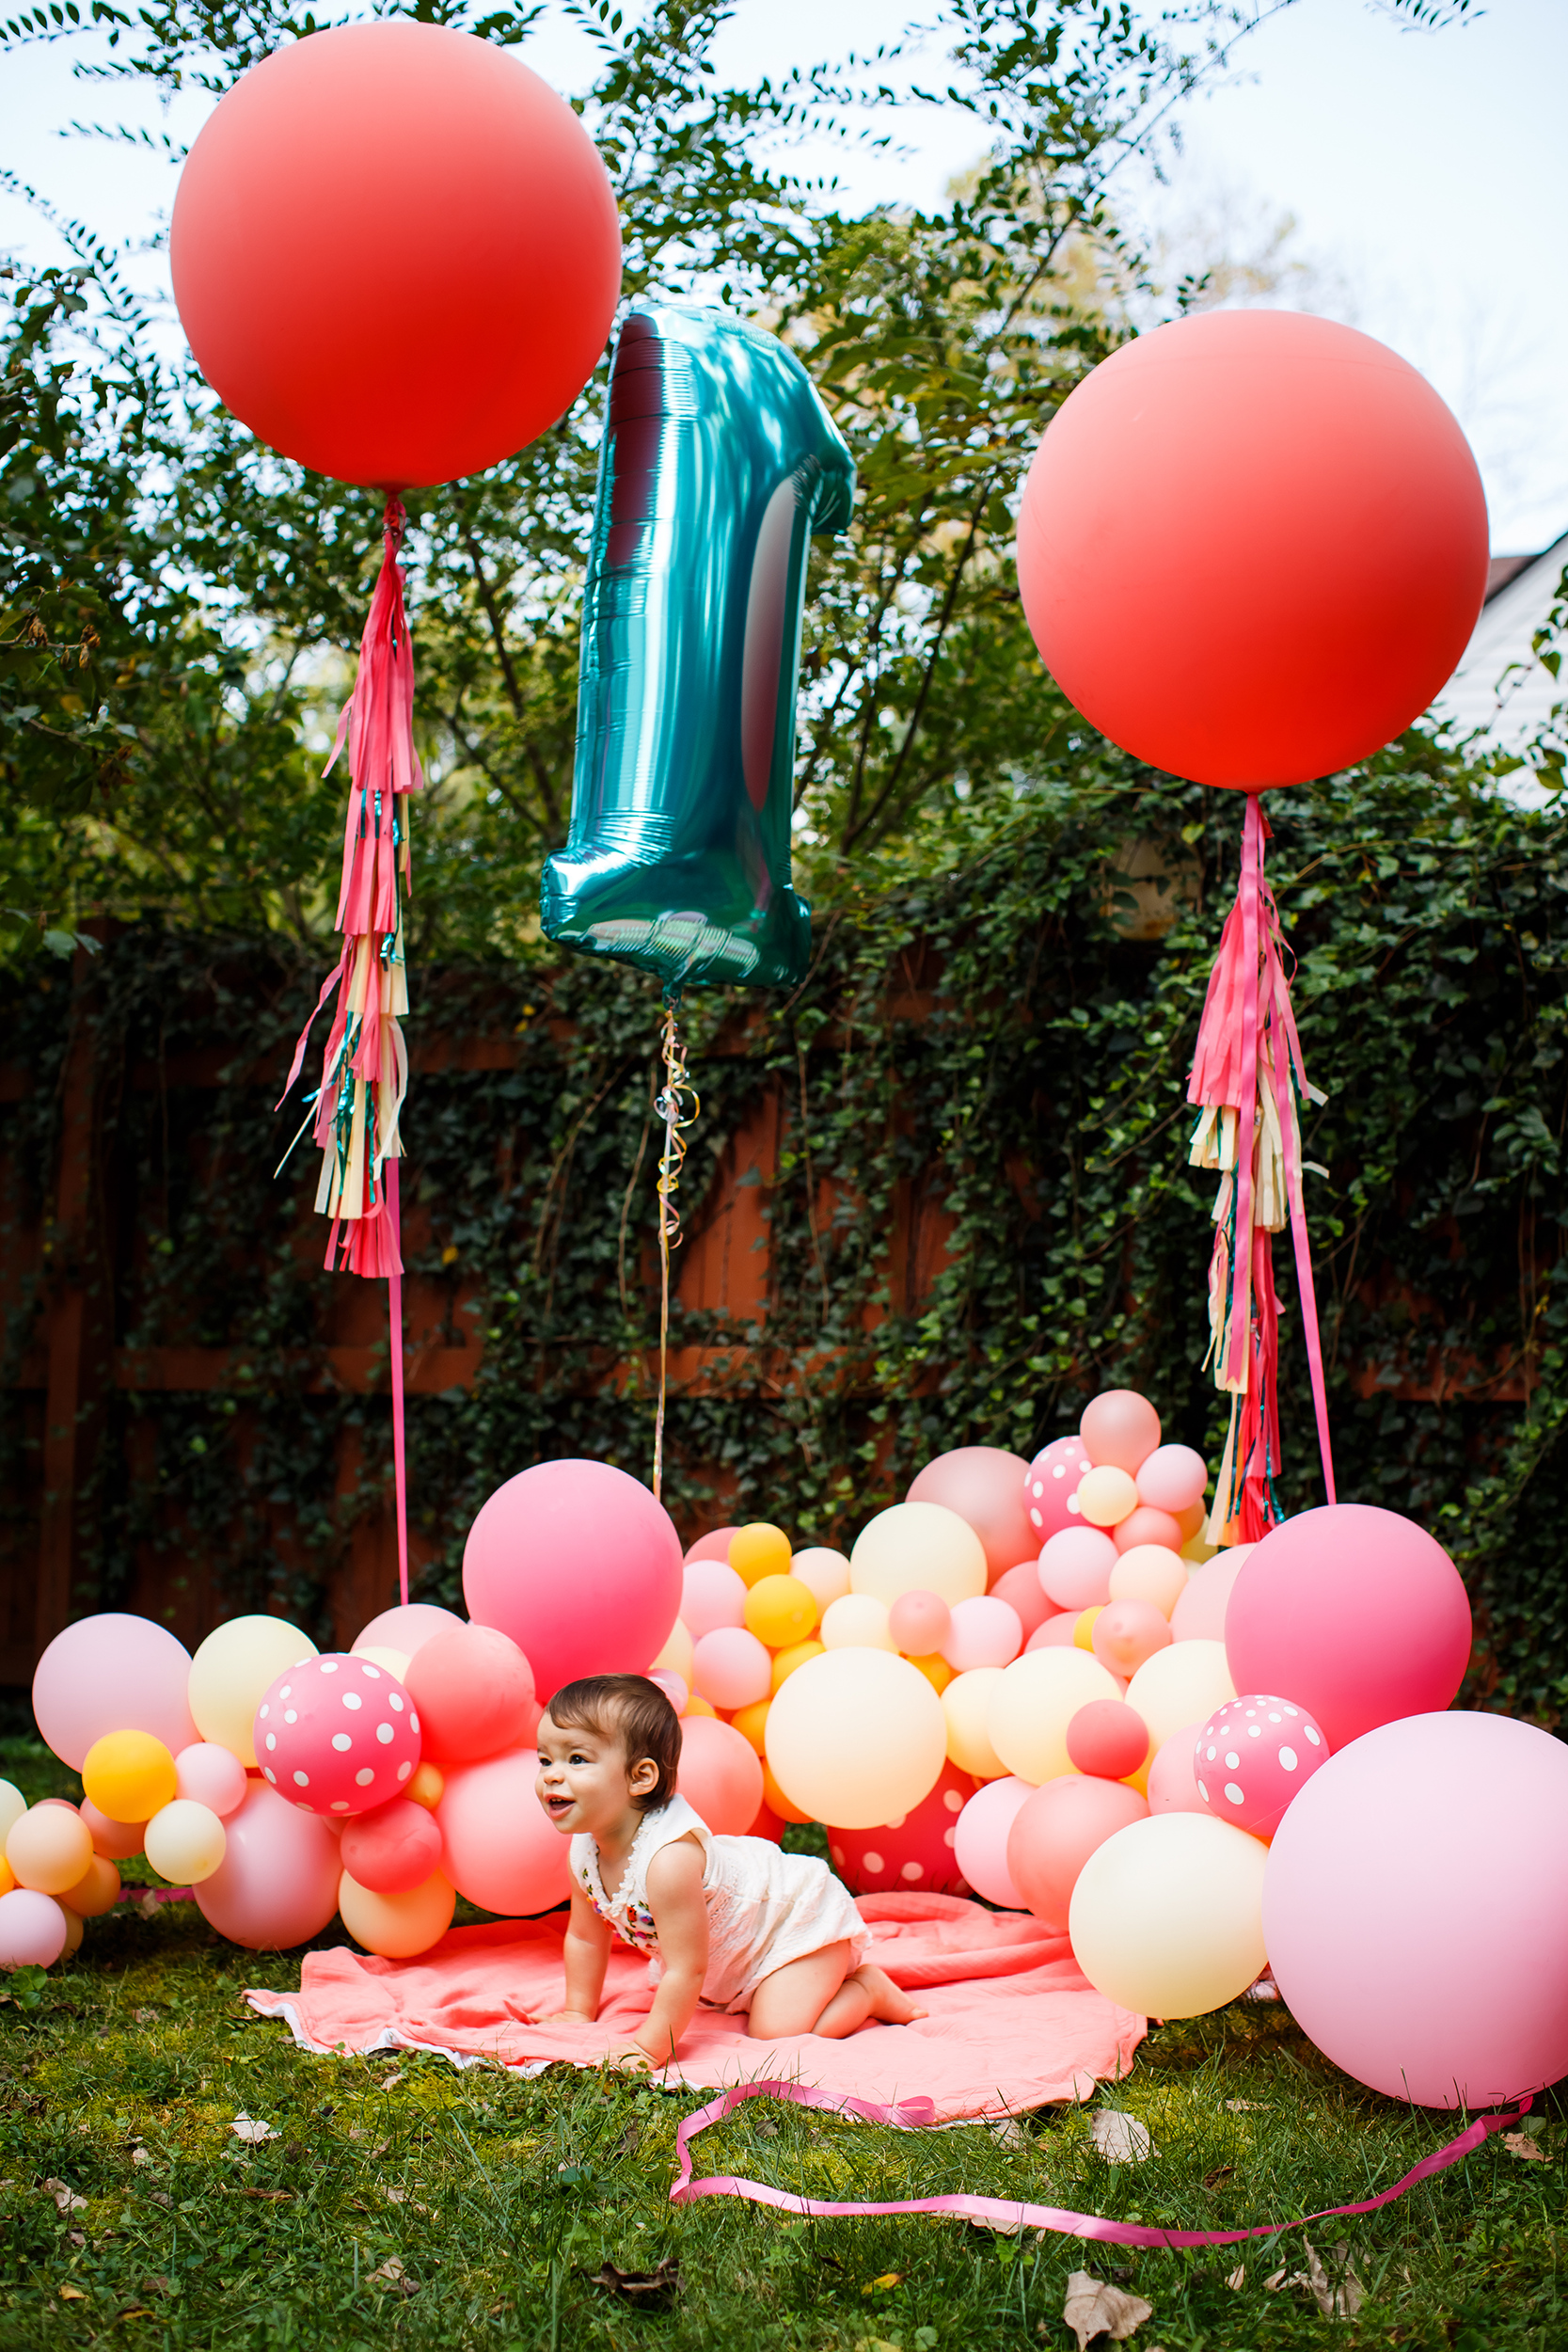 vroom_vroom_balloon_organic_balloon_garland_pink_first_birthday.jpeg